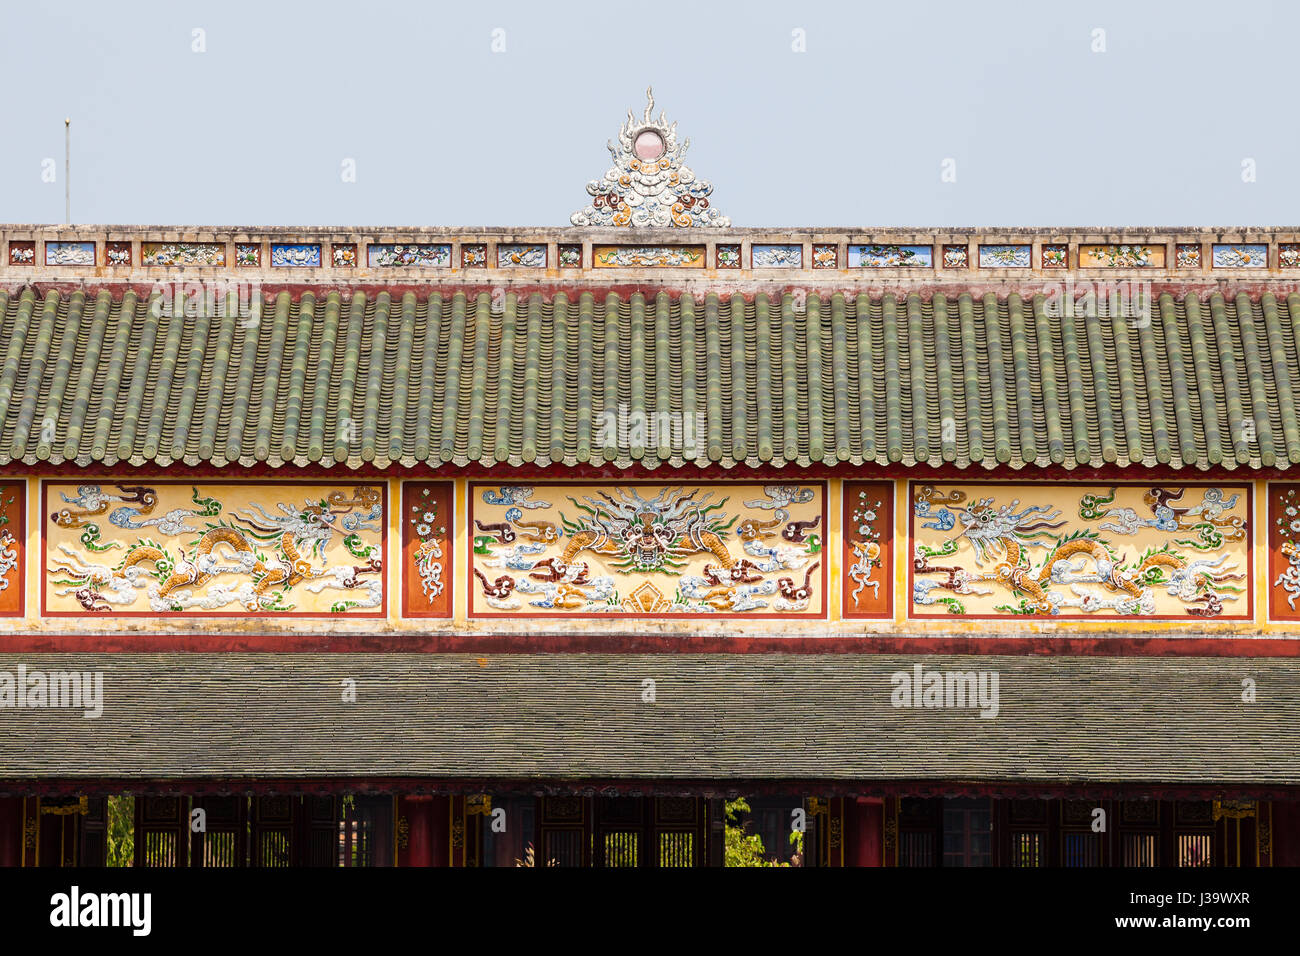 Decorative roof ends, Imperial City (Imperial Citadel), Hue, Vietnam - Stock Image